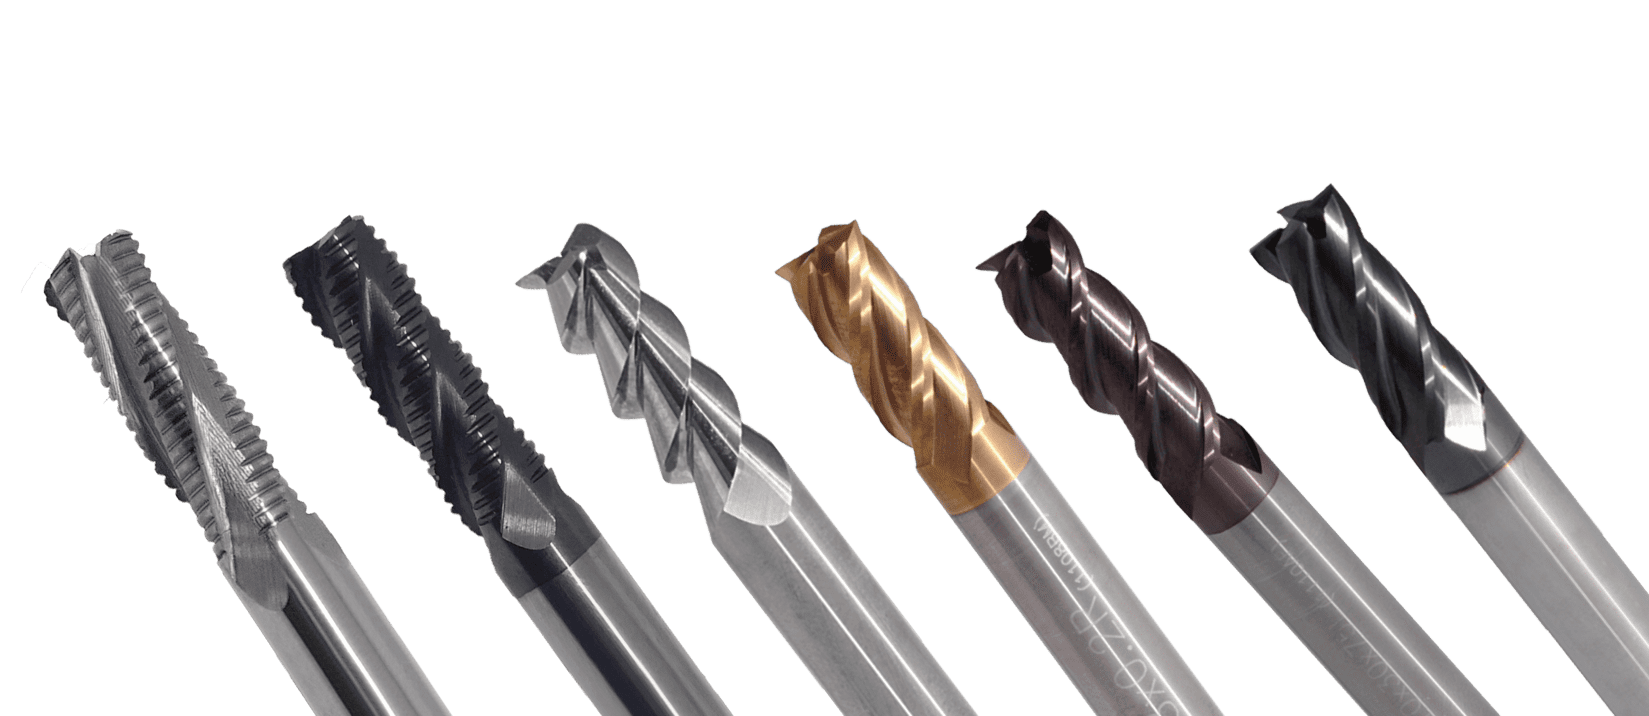 Square End Mill / Roughing End Mill